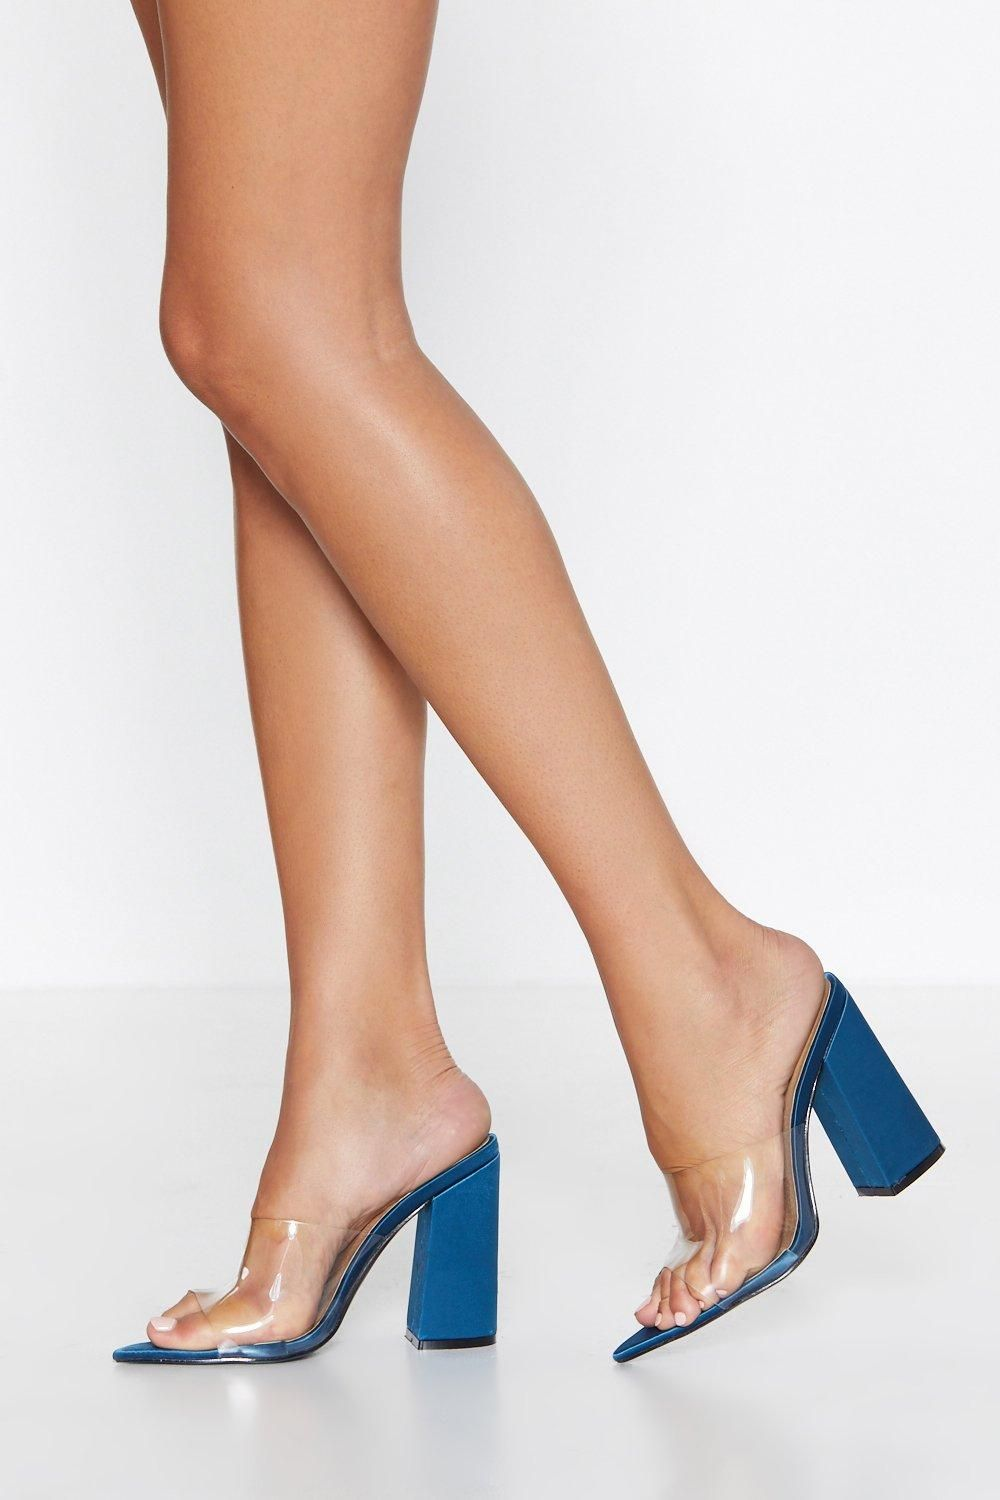 a7c71338b85b1 Clear the Way Heel in 2019 | Loves | Heels, Pointed toe heels, Shoes